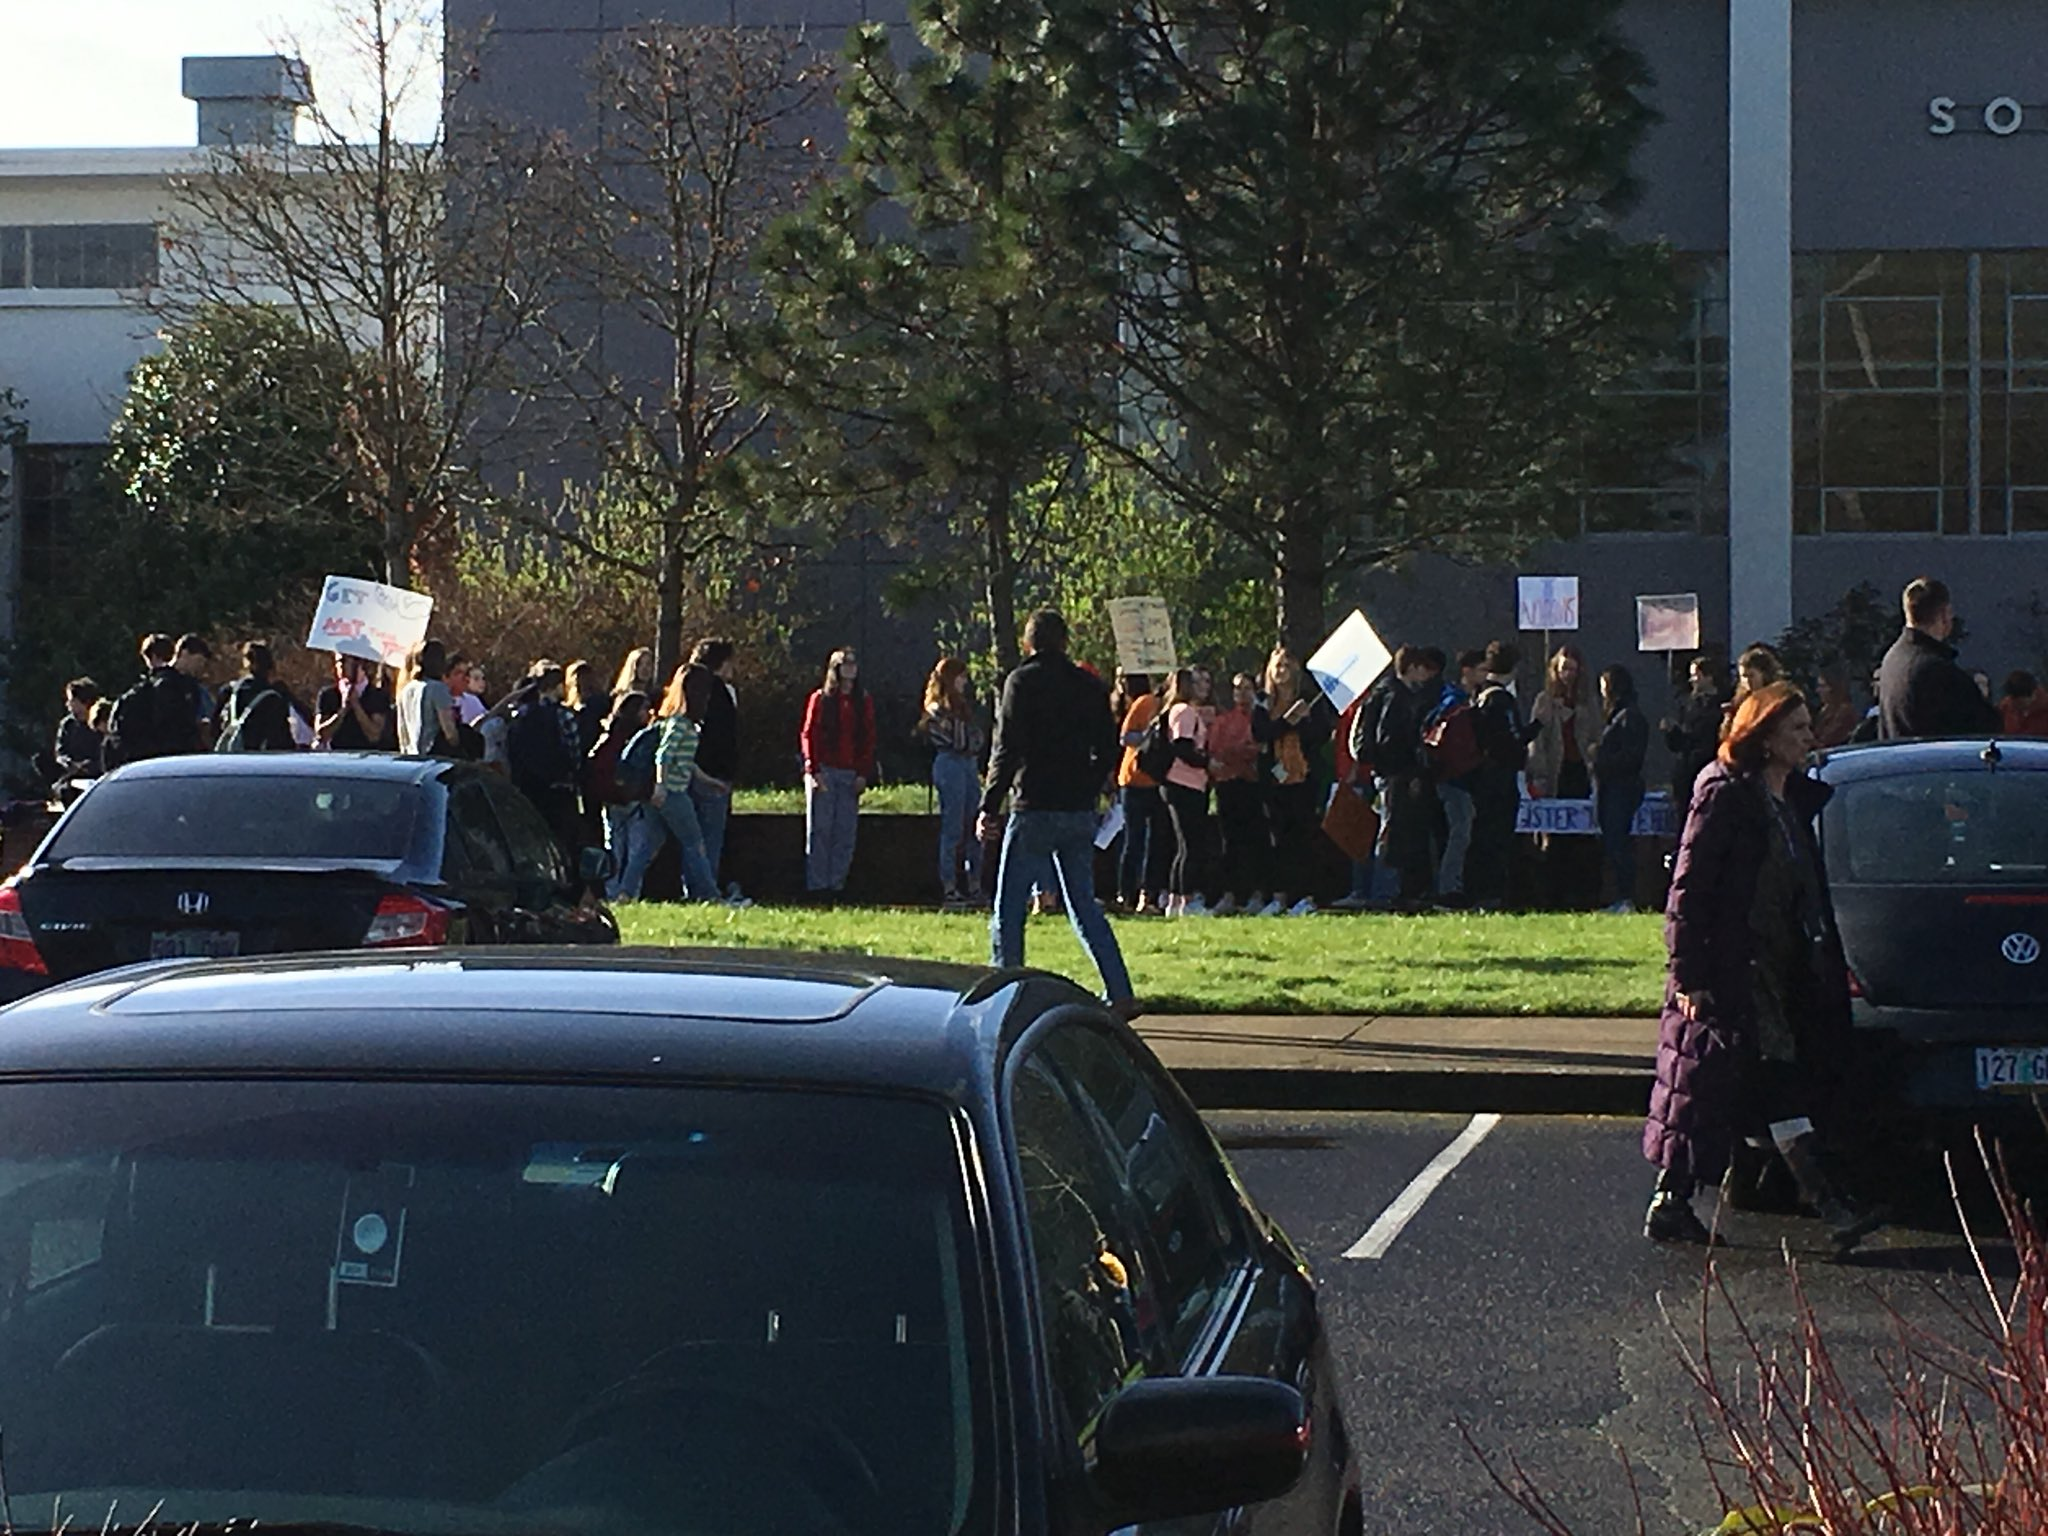 Students walk out of South Eugene High School on March 14, 2018. Supporters lined up along the sidewalk to cheer the students on. (SBG)